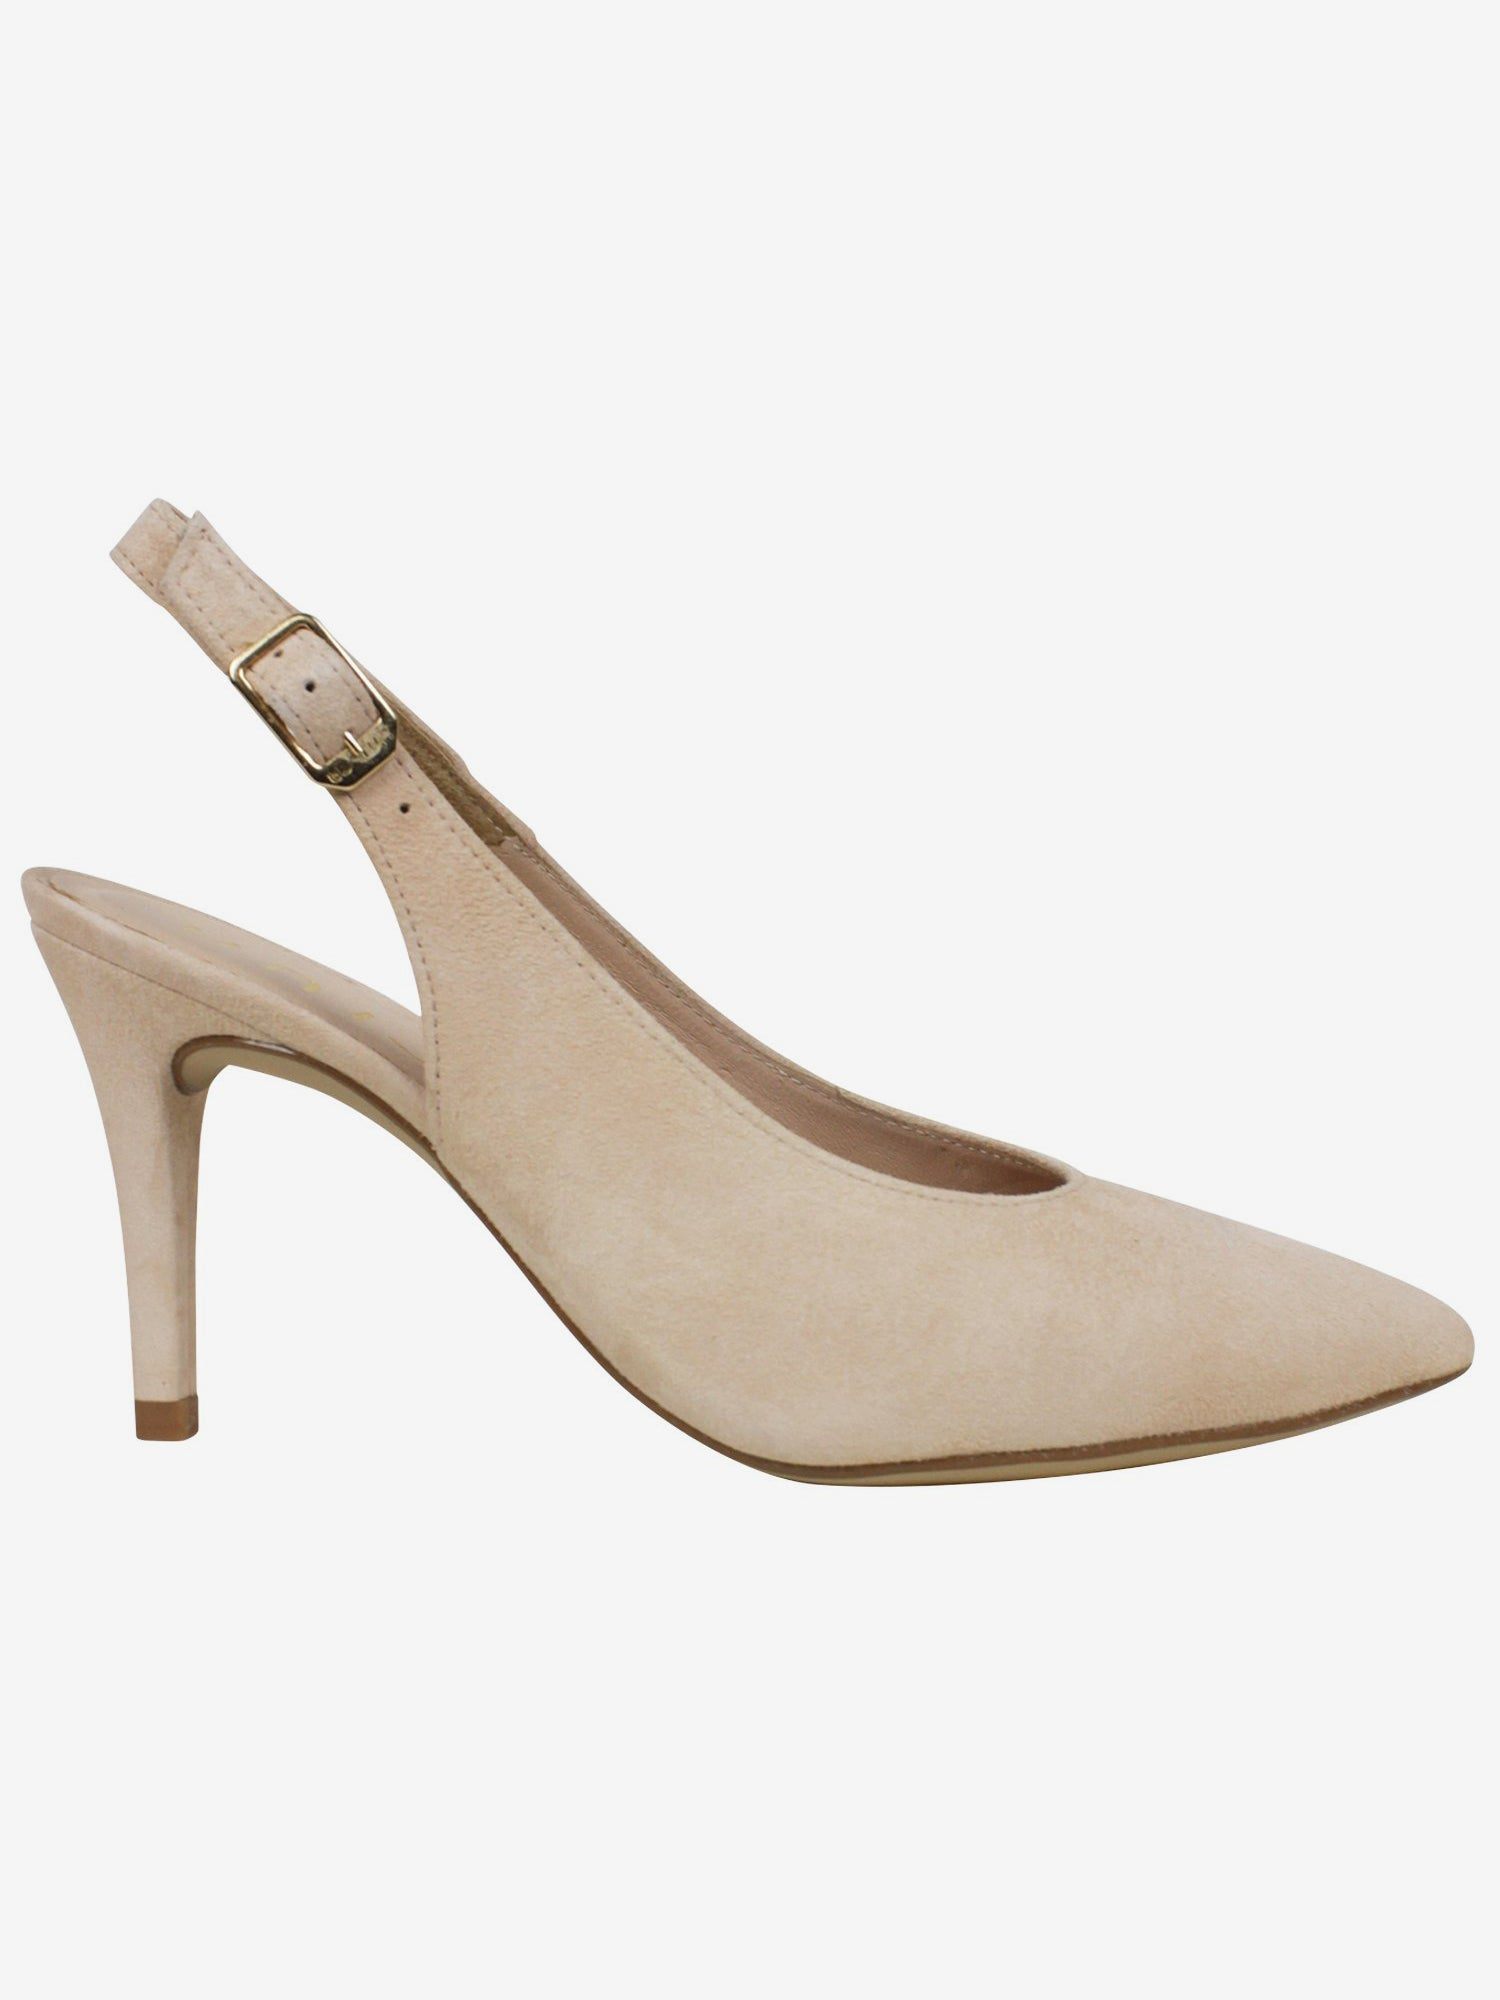 Image of Unisa Cream Suede Heels